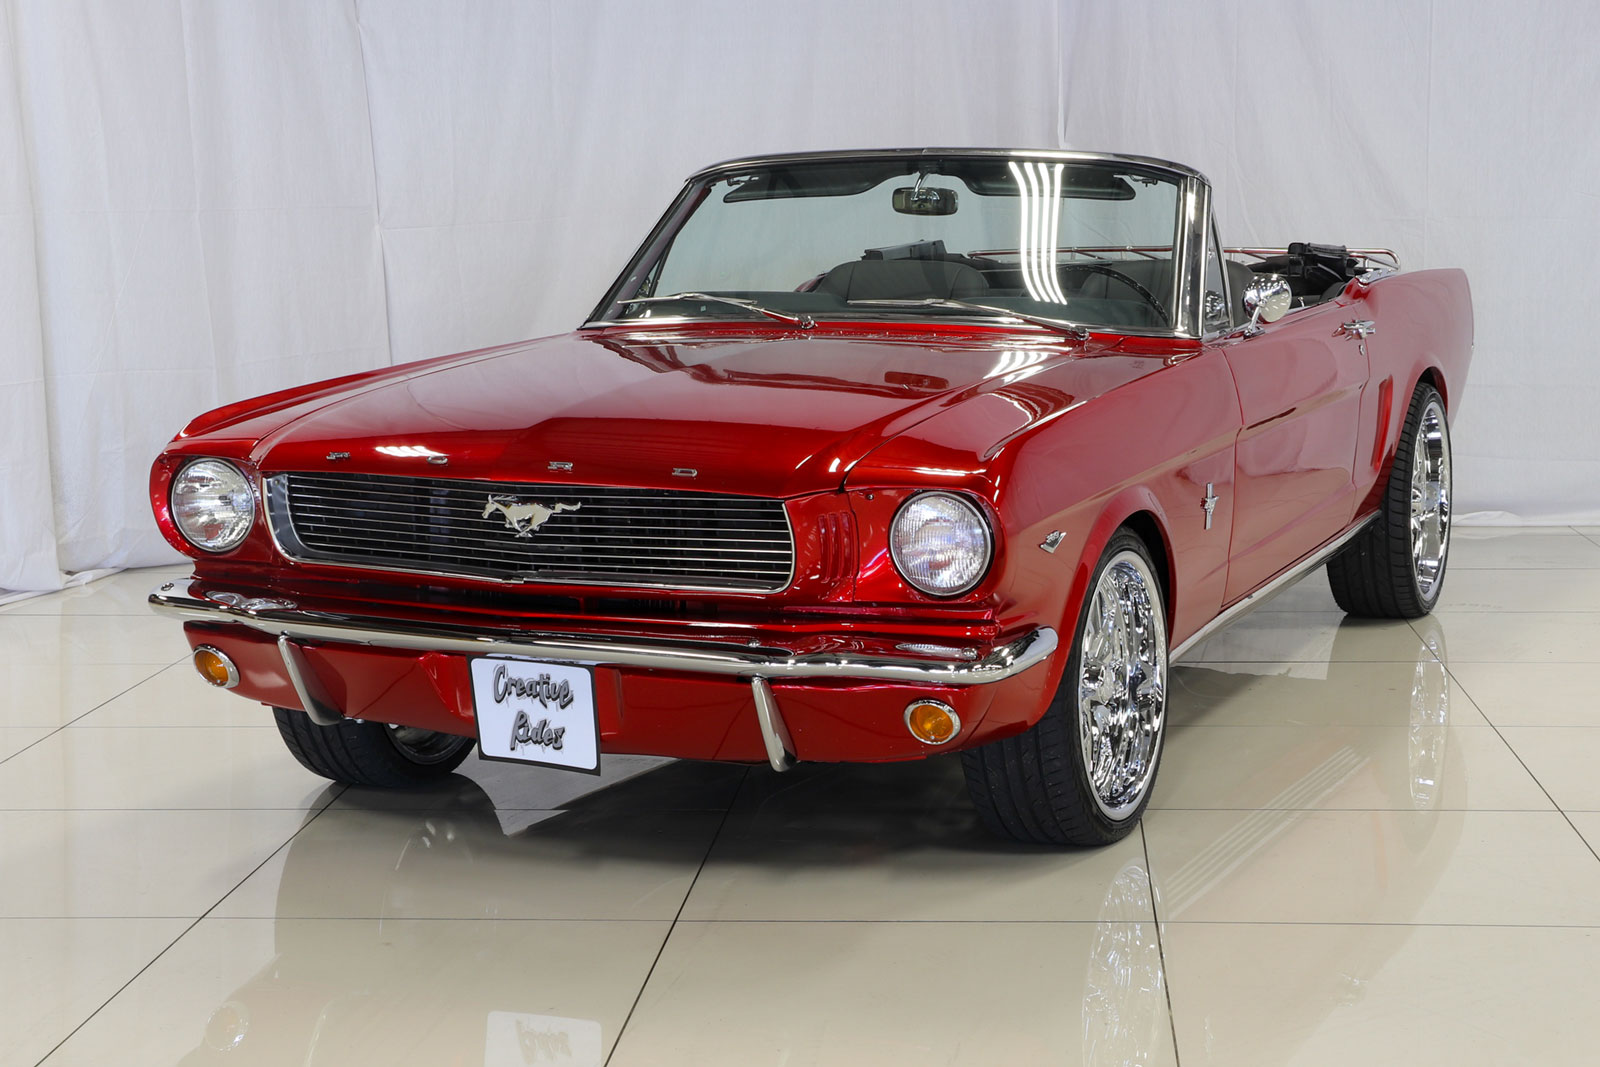 1965-Ford-Mustang-Convertible-Candy-Apple-Red-3.jpg